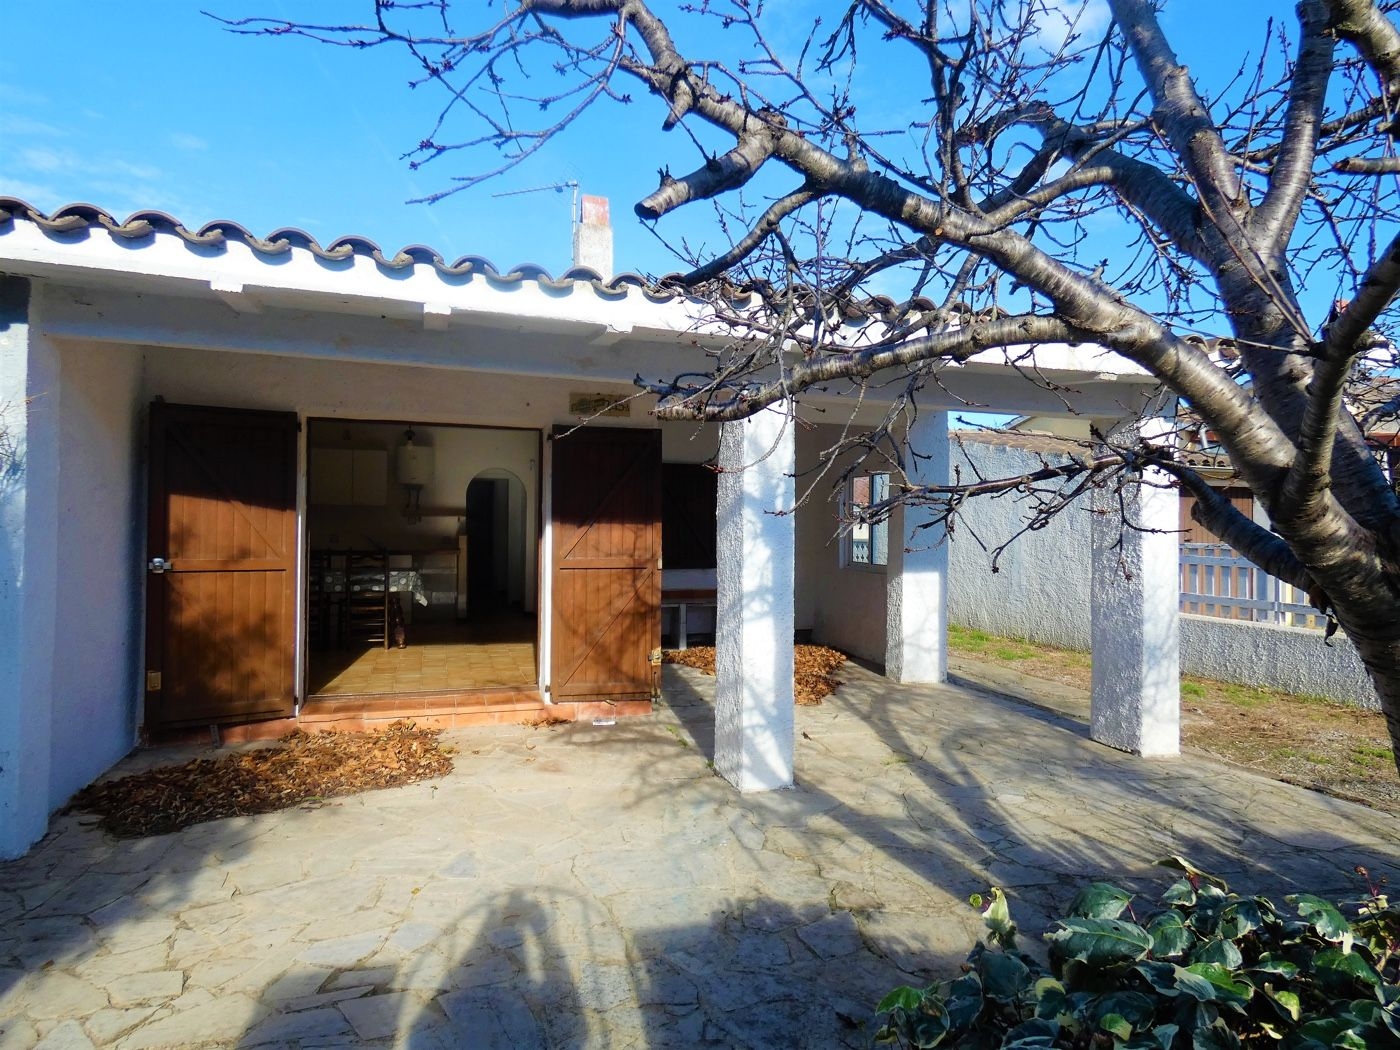 Semi detached house  Carrer puigmal-f2. Casa para reformar en venta en e